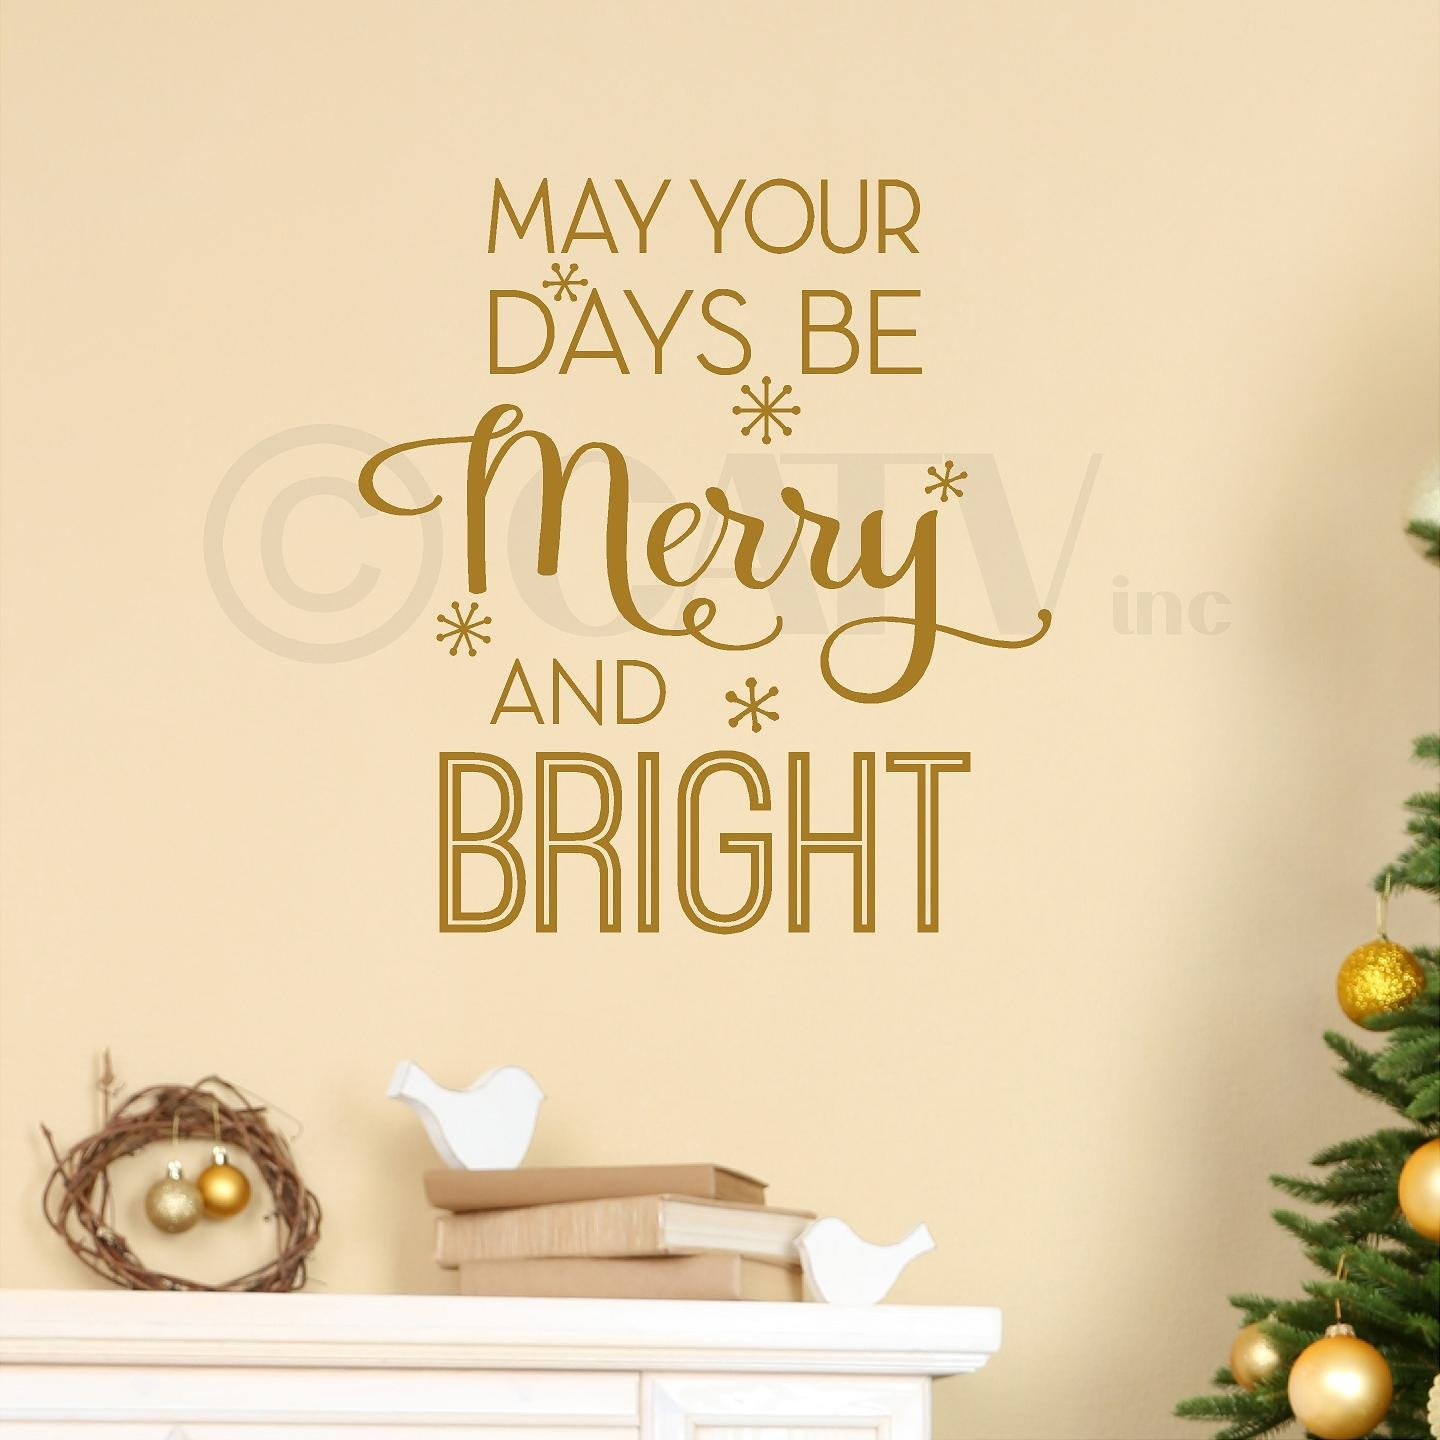 Amazon.com: May your days be Merry and Bright Christmas vinyl ...